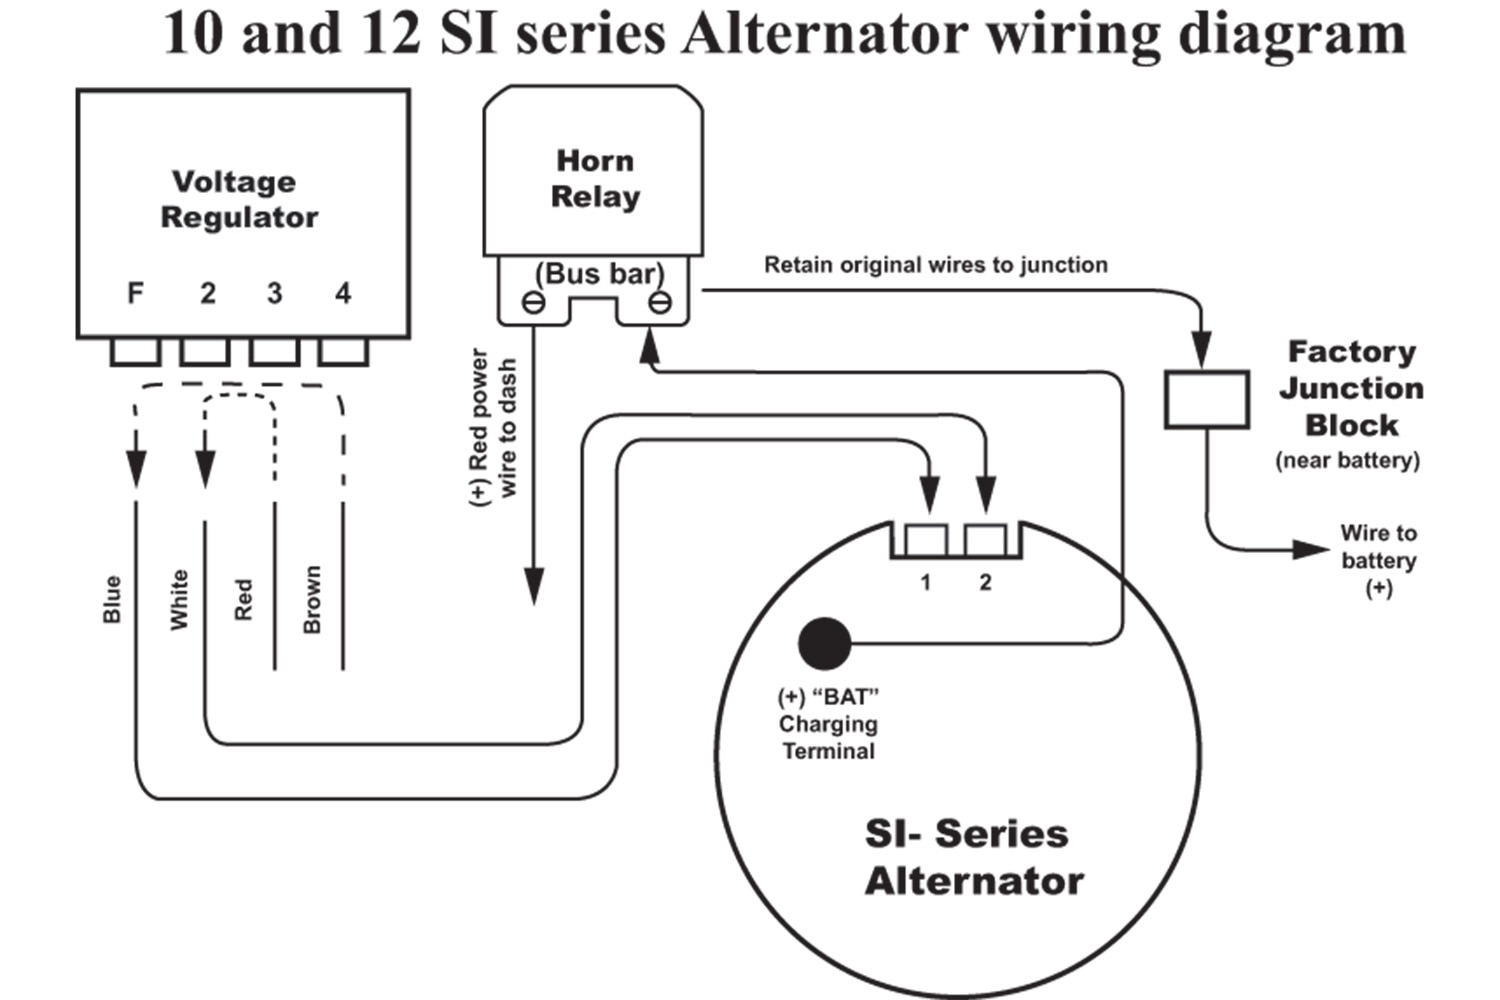 hight resolution of delco diagram wiring alternator 1103174 wiring diagram centredelco remy 12si wiring diagram wiring library14 gm si